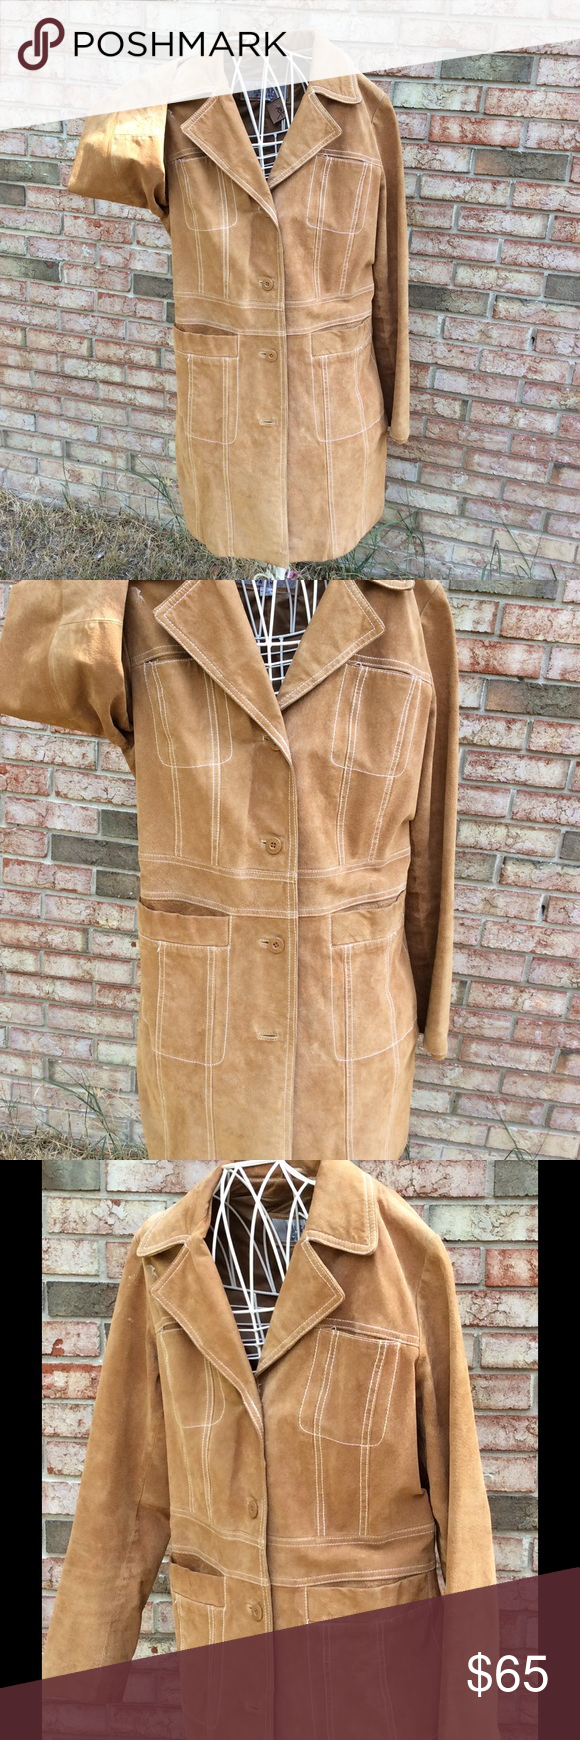 Wilson suede coat size Large ( vintage) Great vintage